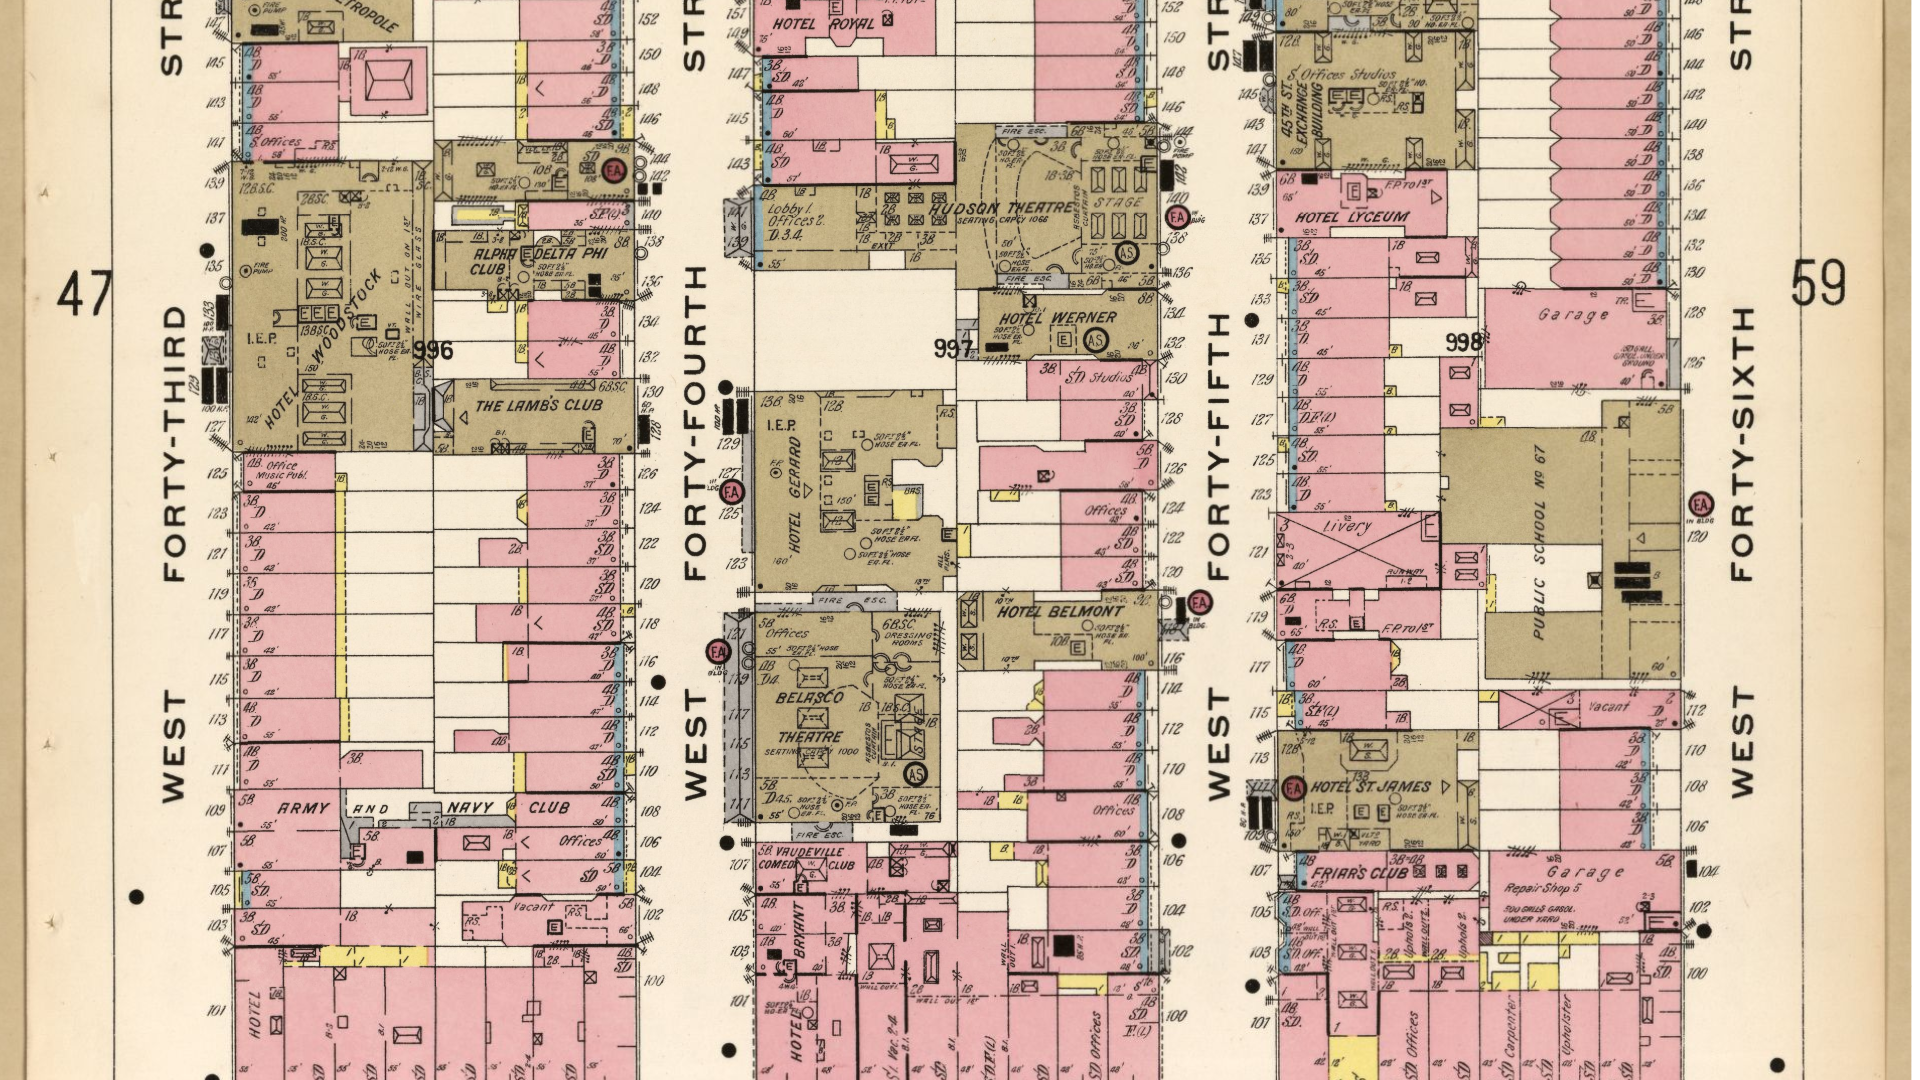 Sanborn Fire Map.Mapping The U S Block By Block Library Of Congress Medium